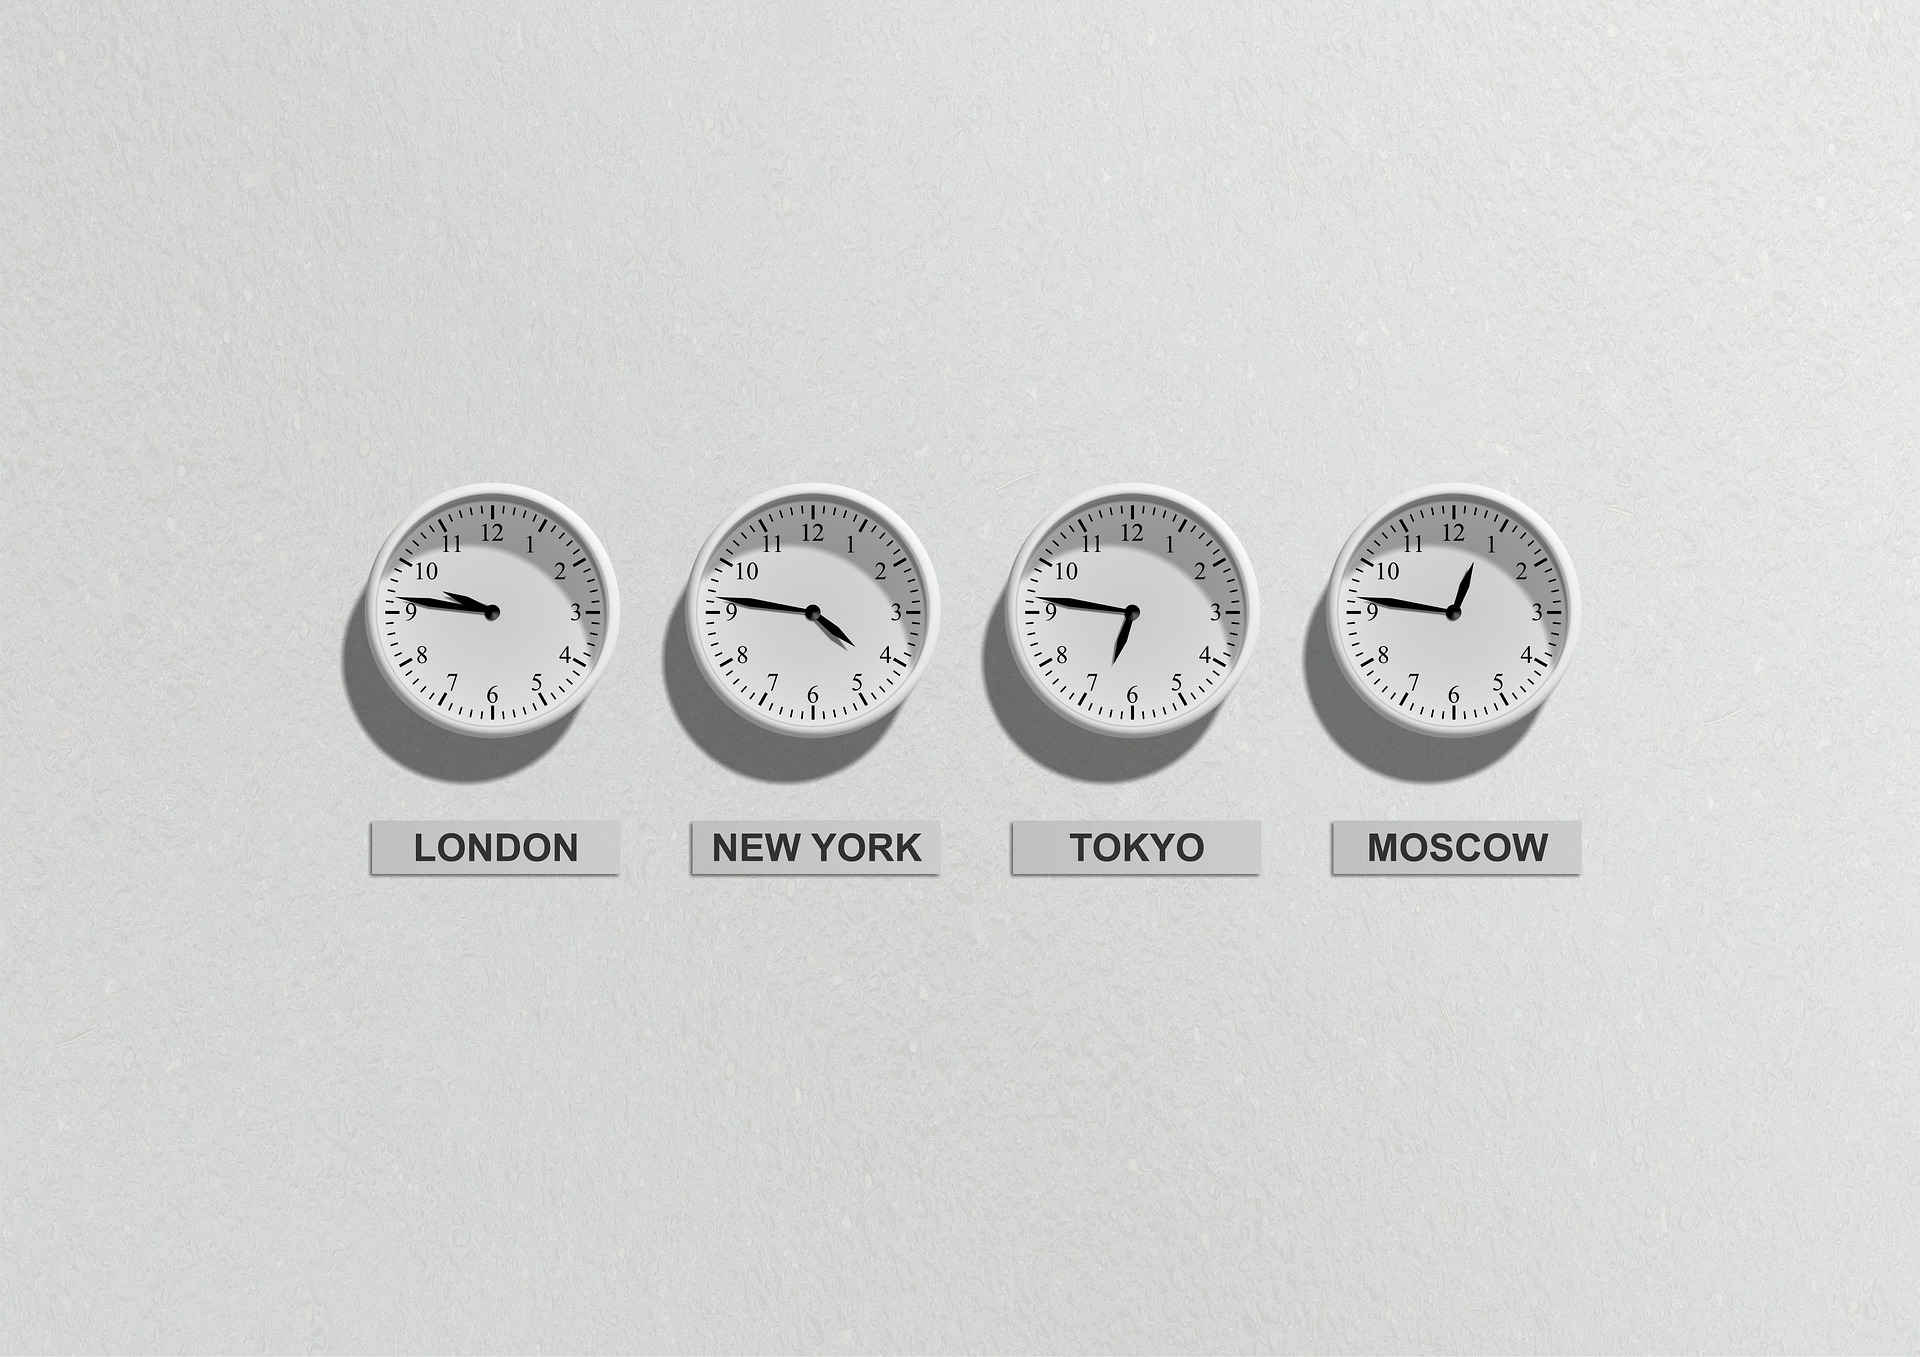 Clocks on wall indicating different time zones